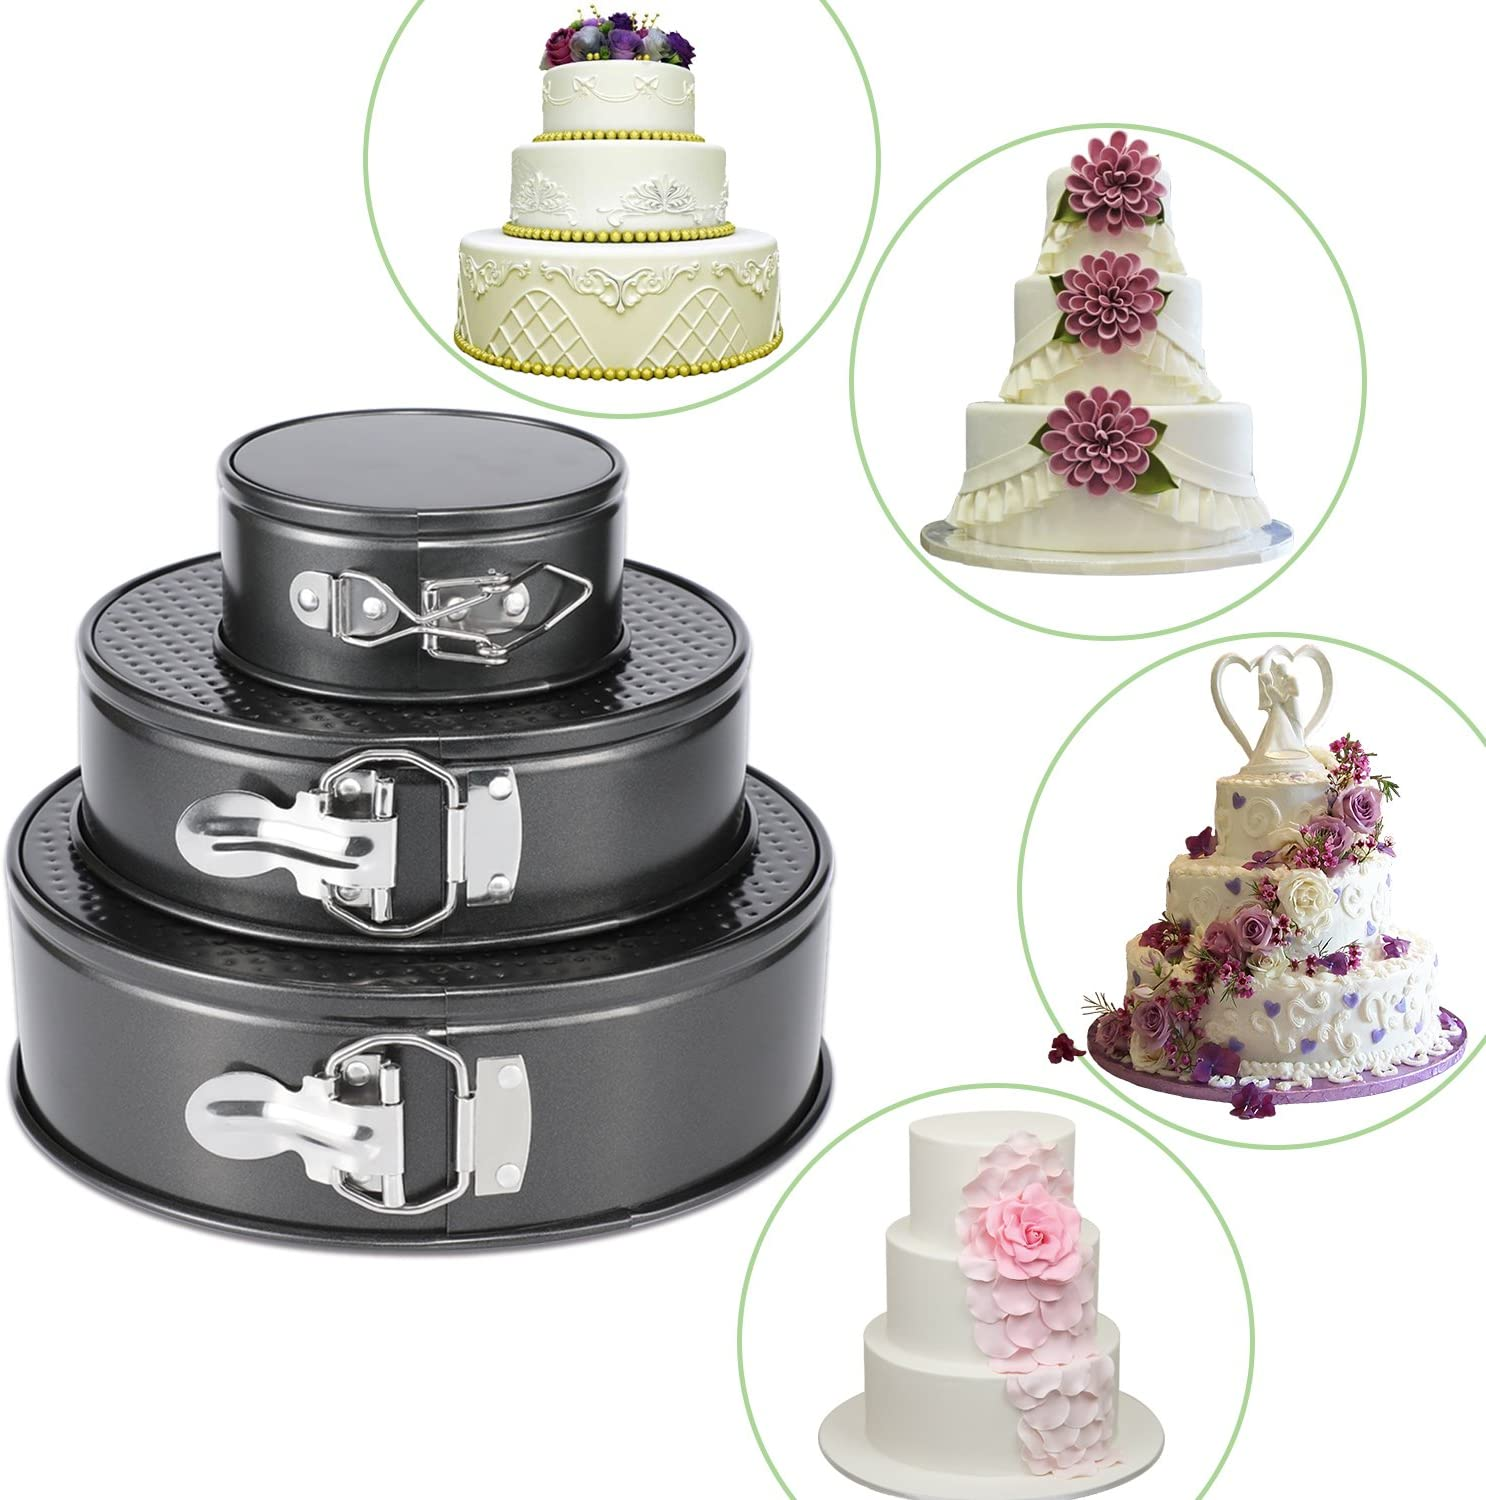 """Hiware Springform Pan for Baking Set of 3 Non-stick Cheesecake Pan, Leakproof Round Cake Pan Set Includes 3 Pieces 4"""" 7"""" 9"""" Springform Pan, Icing Spatula and Icing Smoother: Kitchen & Dining"""